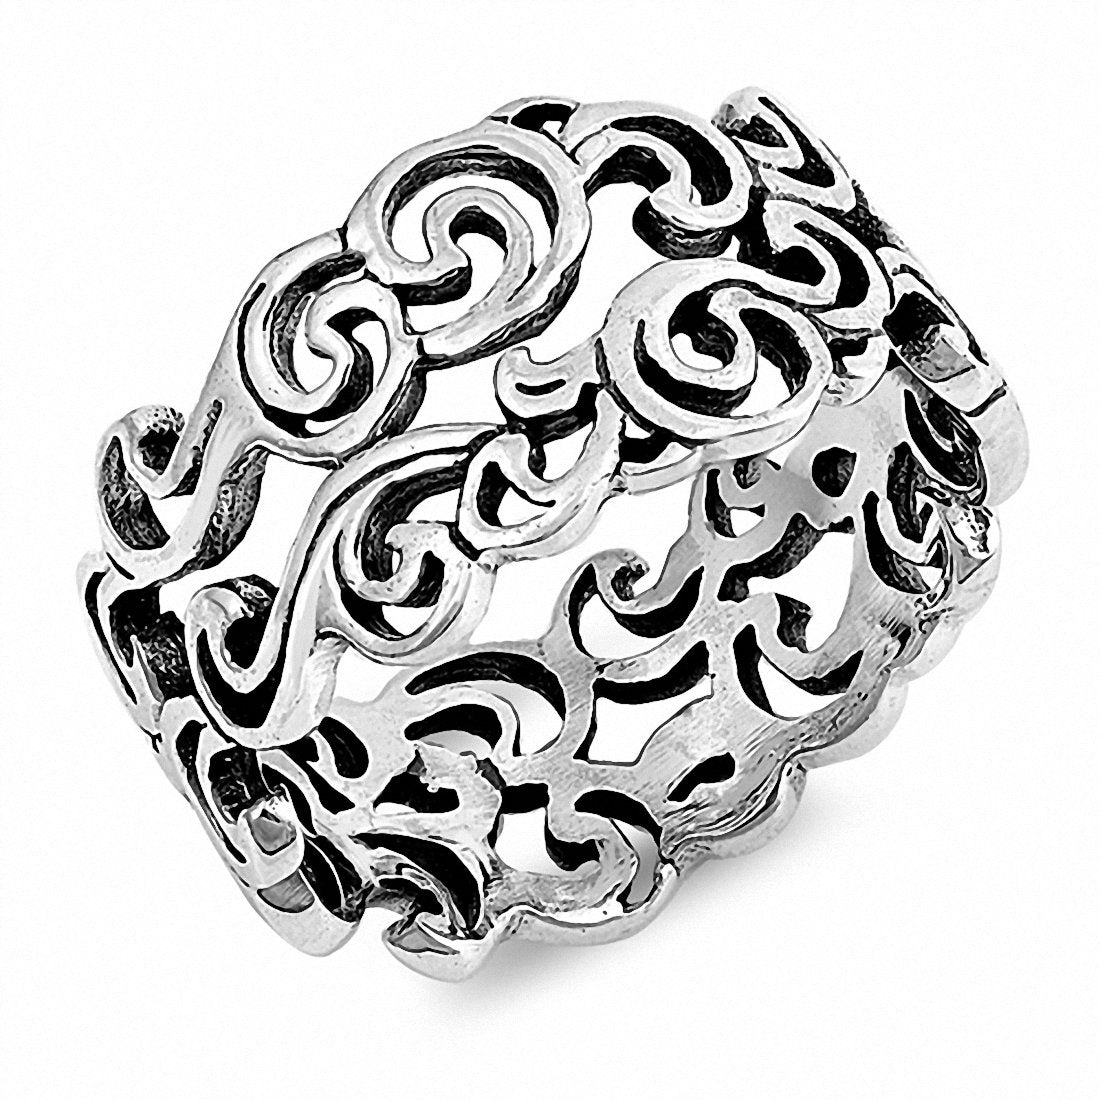 9mm Filigree Band Ring 925 Sterling Silver Choose Color